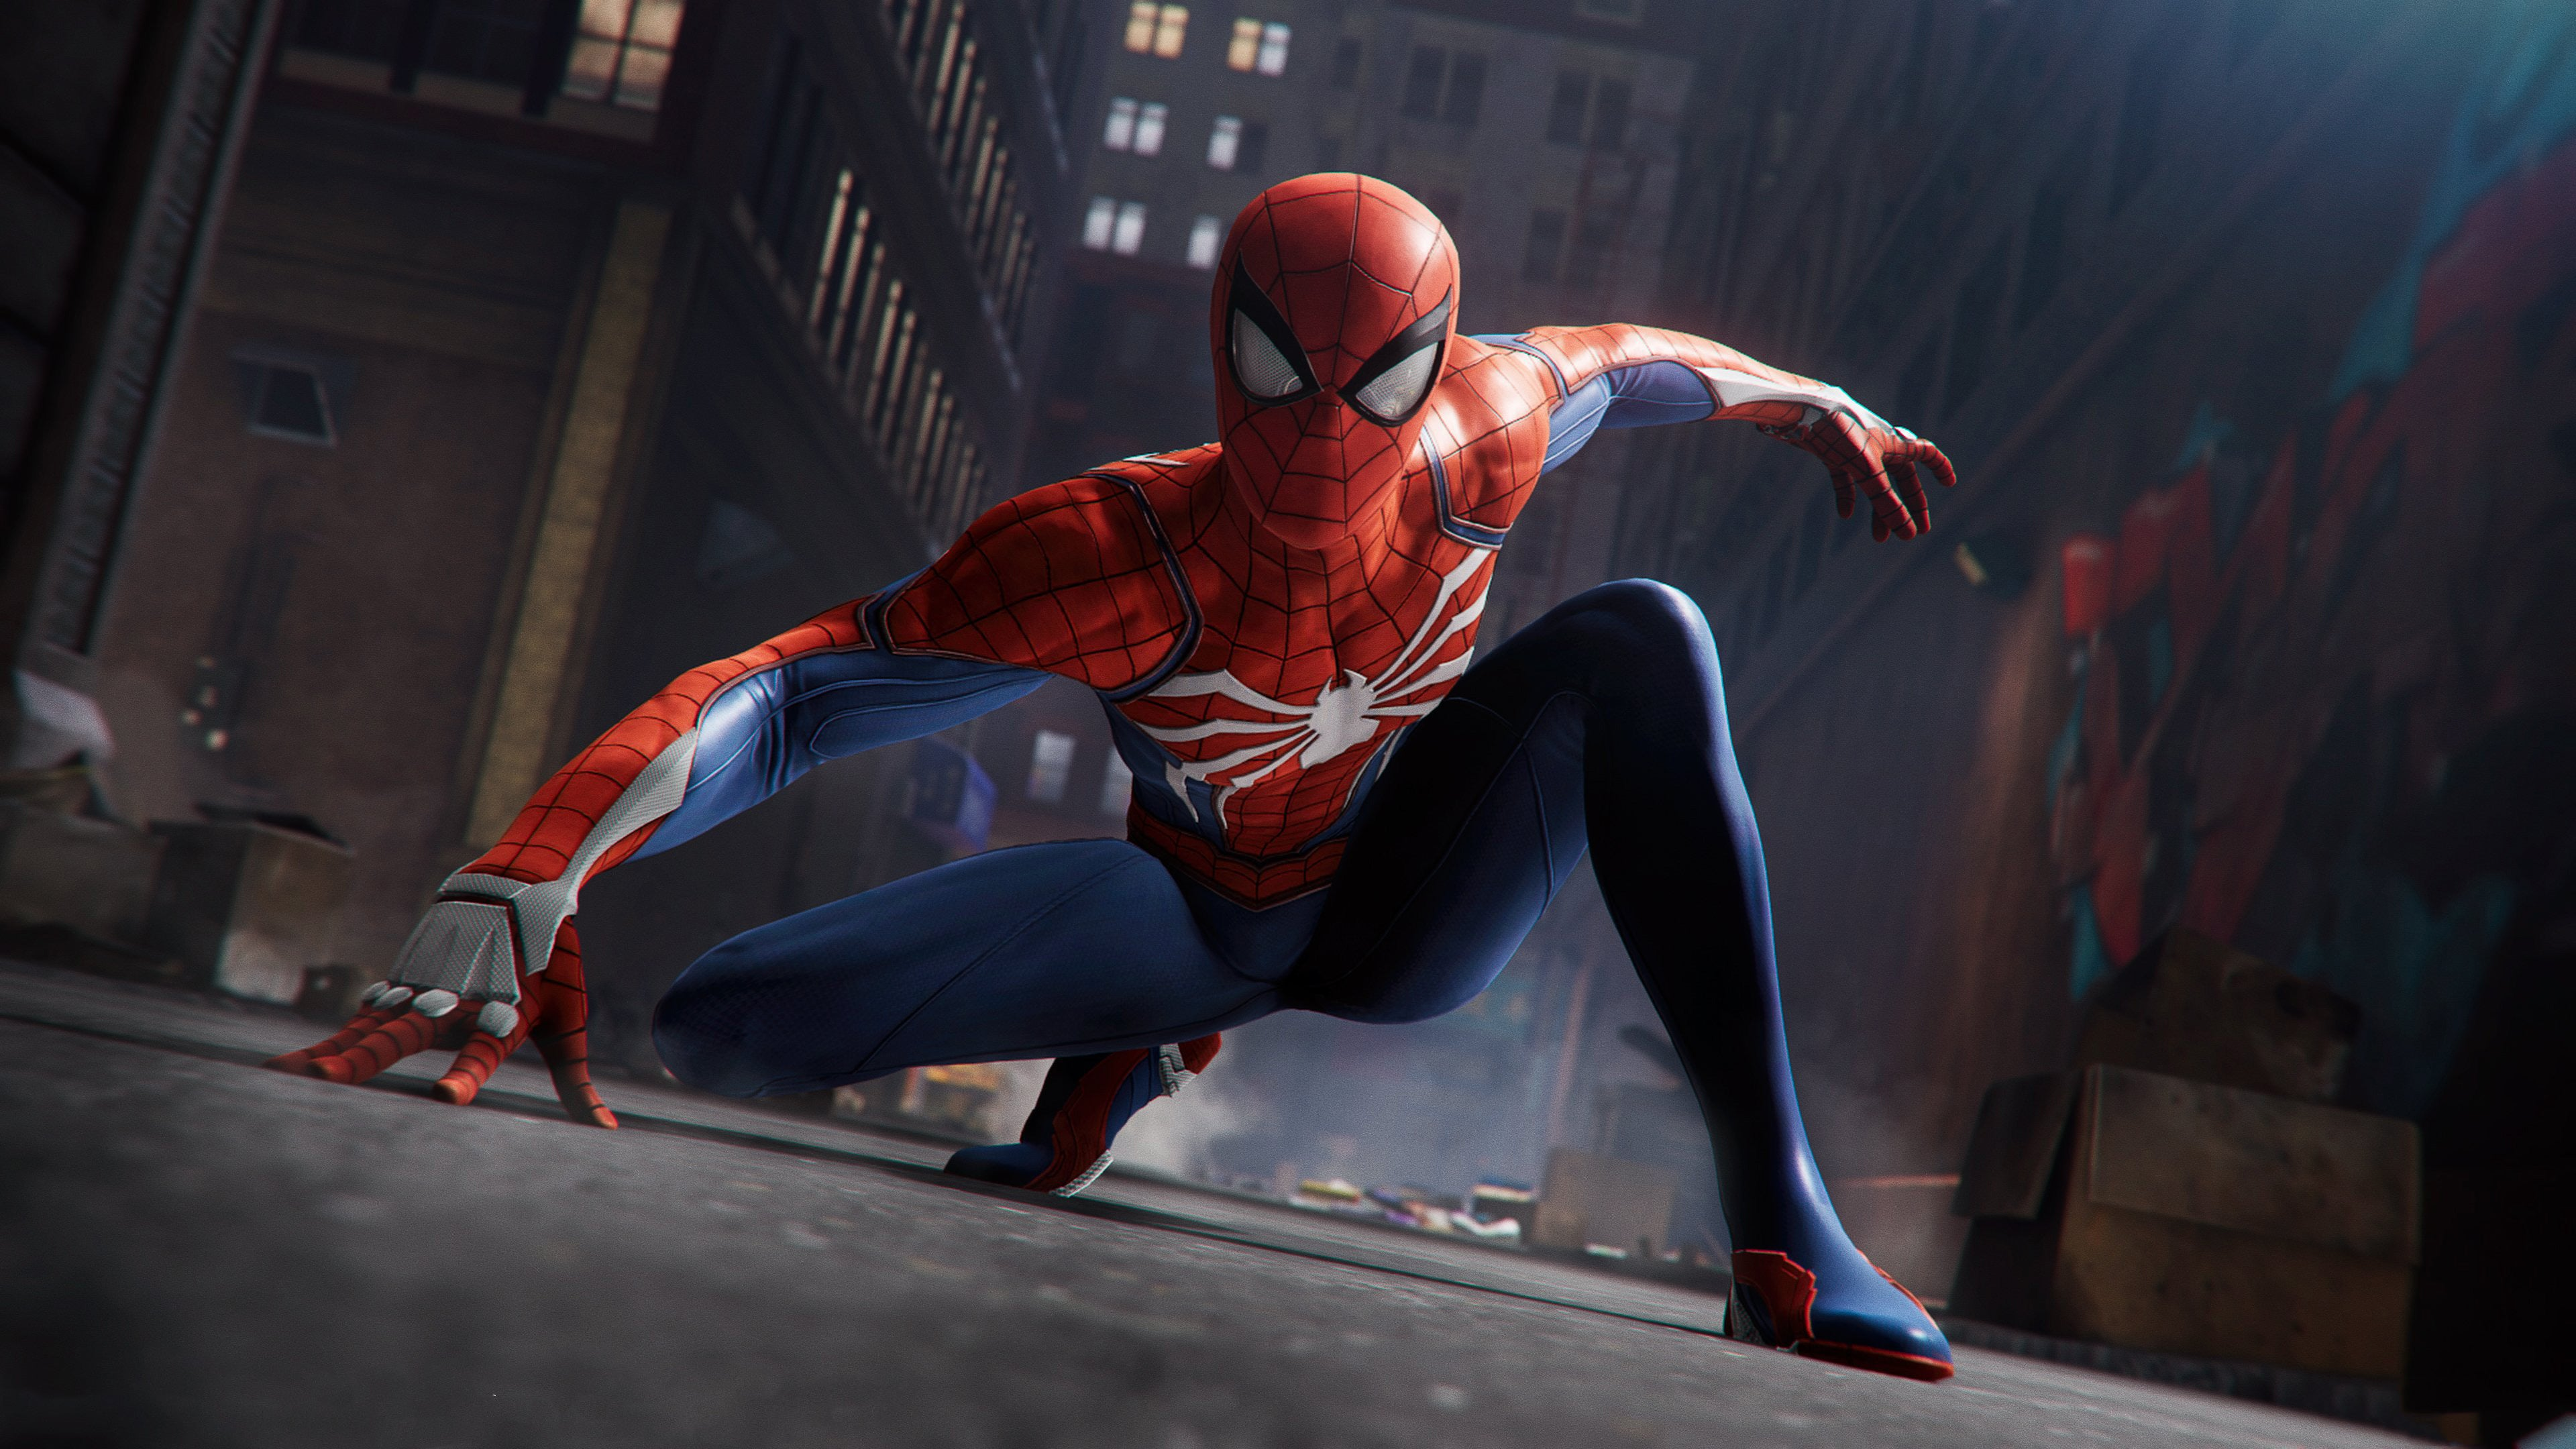 Marvel S Spider Man Is A Great Open World Game For 2012